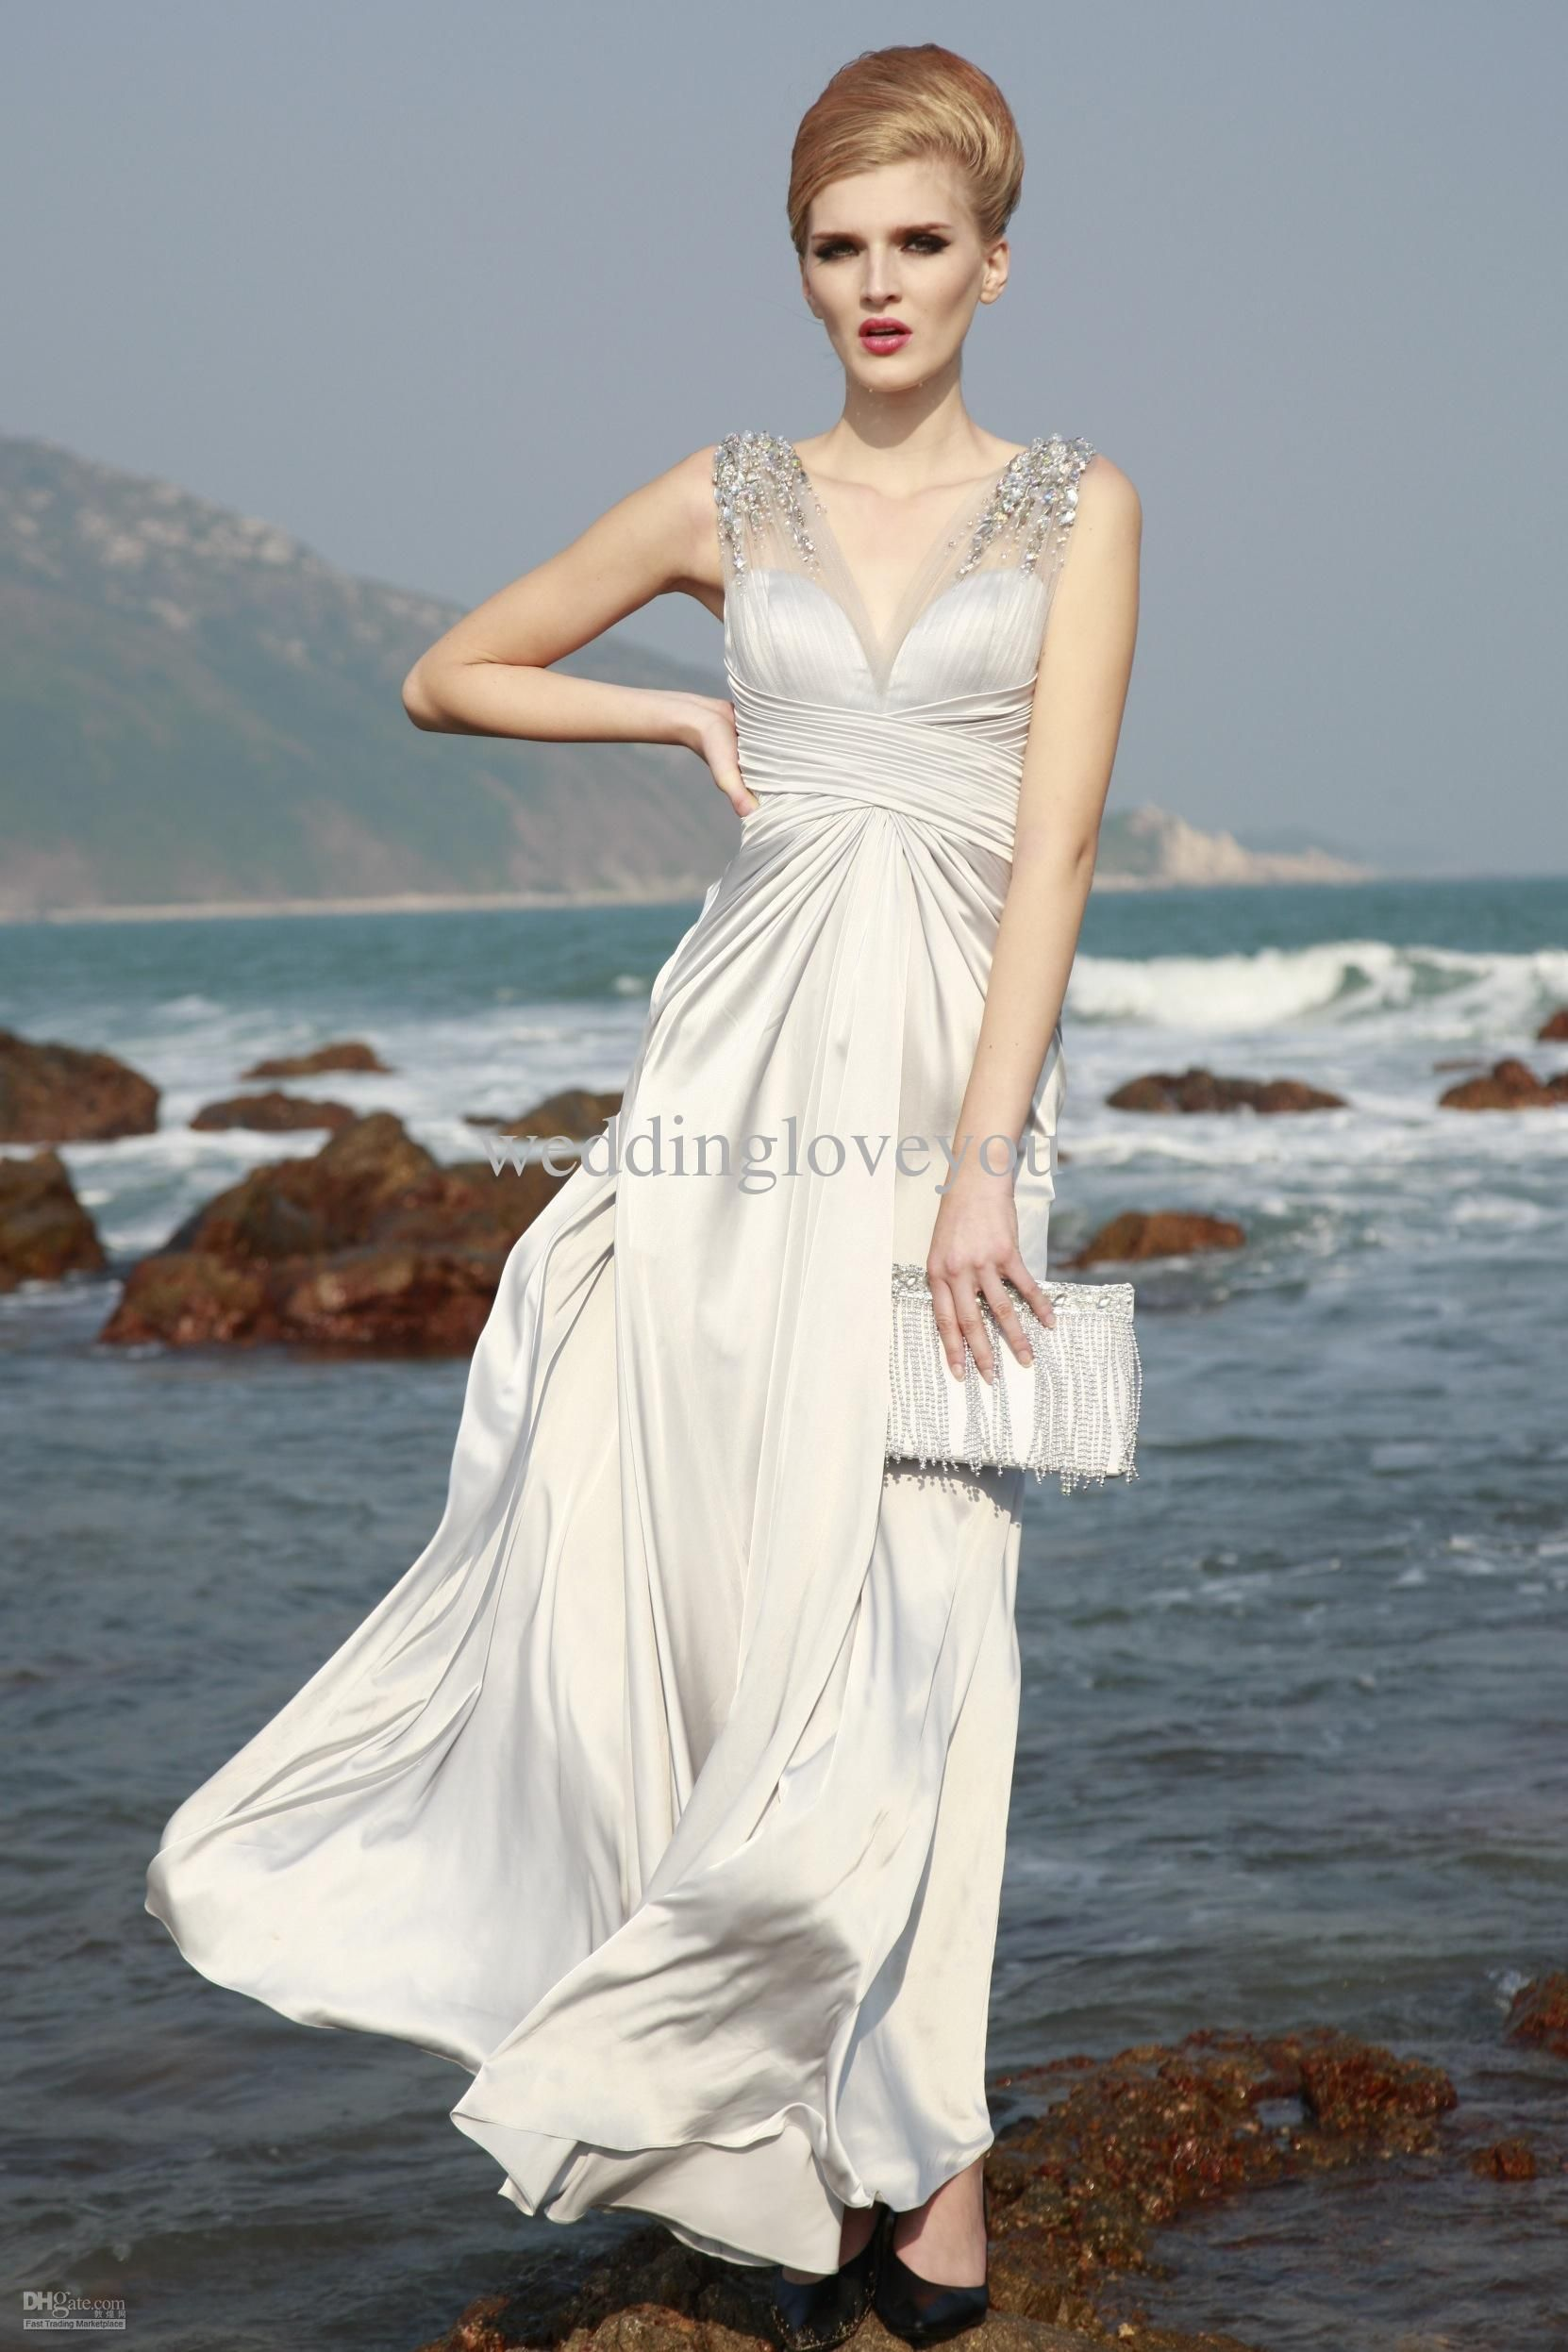 Wholesale 2013 Hot selling elegant/exquisite/sexy/high quality sheath/column v-neck/sweetheart floor-length beads/sequins /crystal evening/formal gown, Free shipping, $113.0/Piece | DHgate